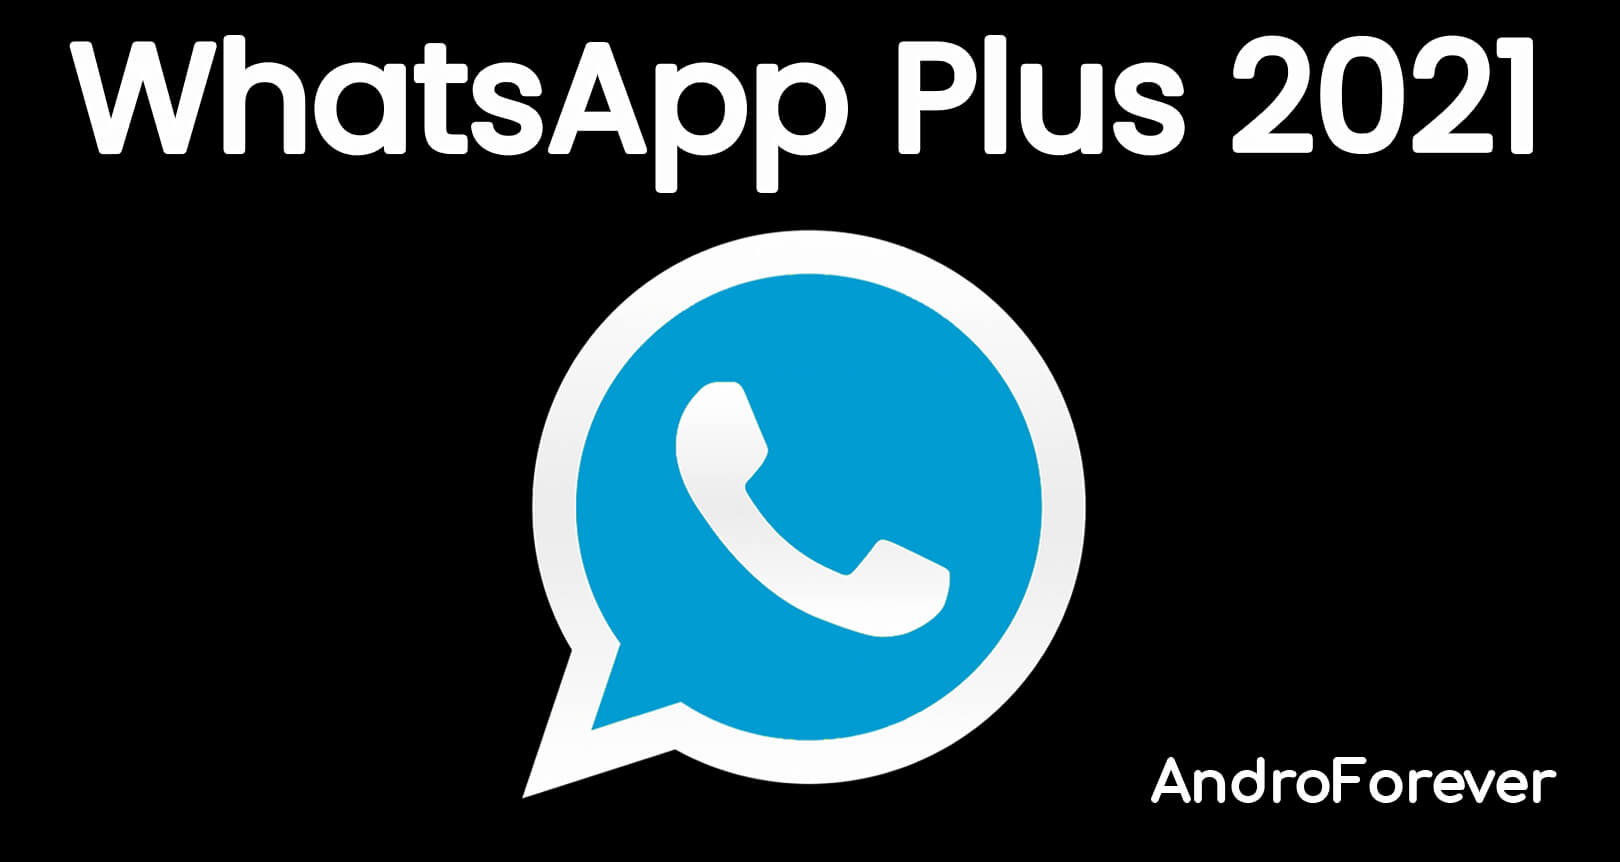 WhatsApp Plus 2021 v15.51.2 (NO BAN / Official) for Android updated